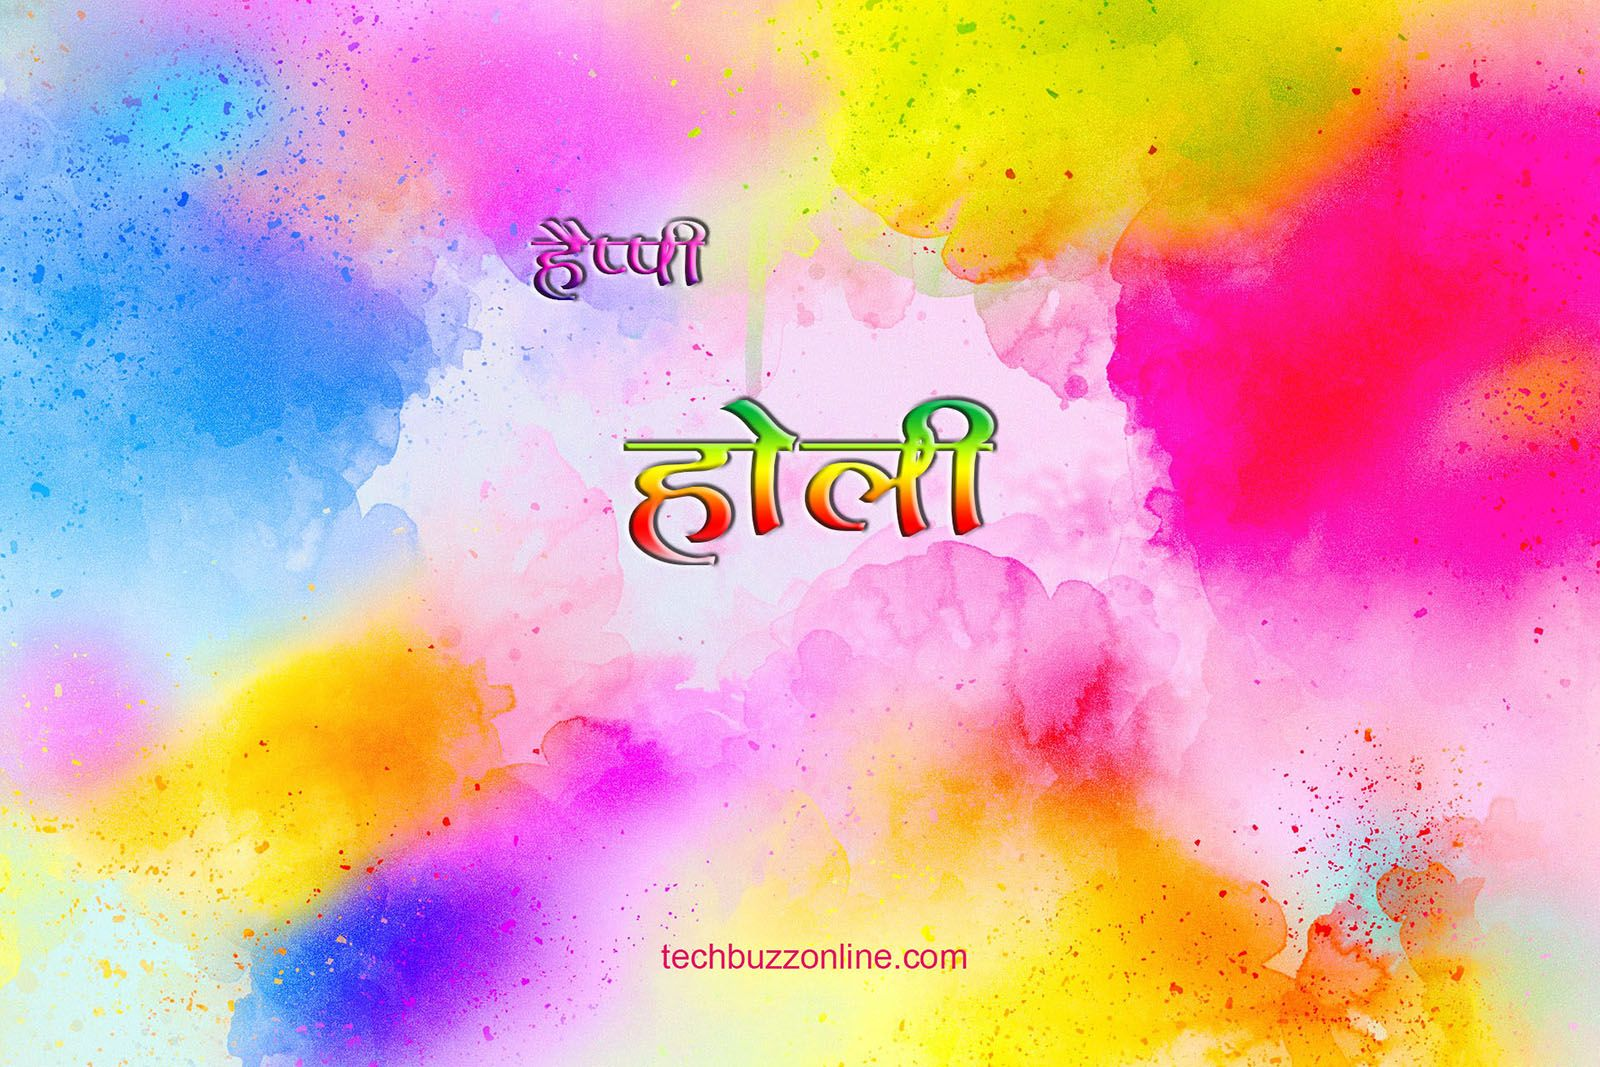 10 Holi Wallpapers with Colors and Fun for Desktop and Mobile